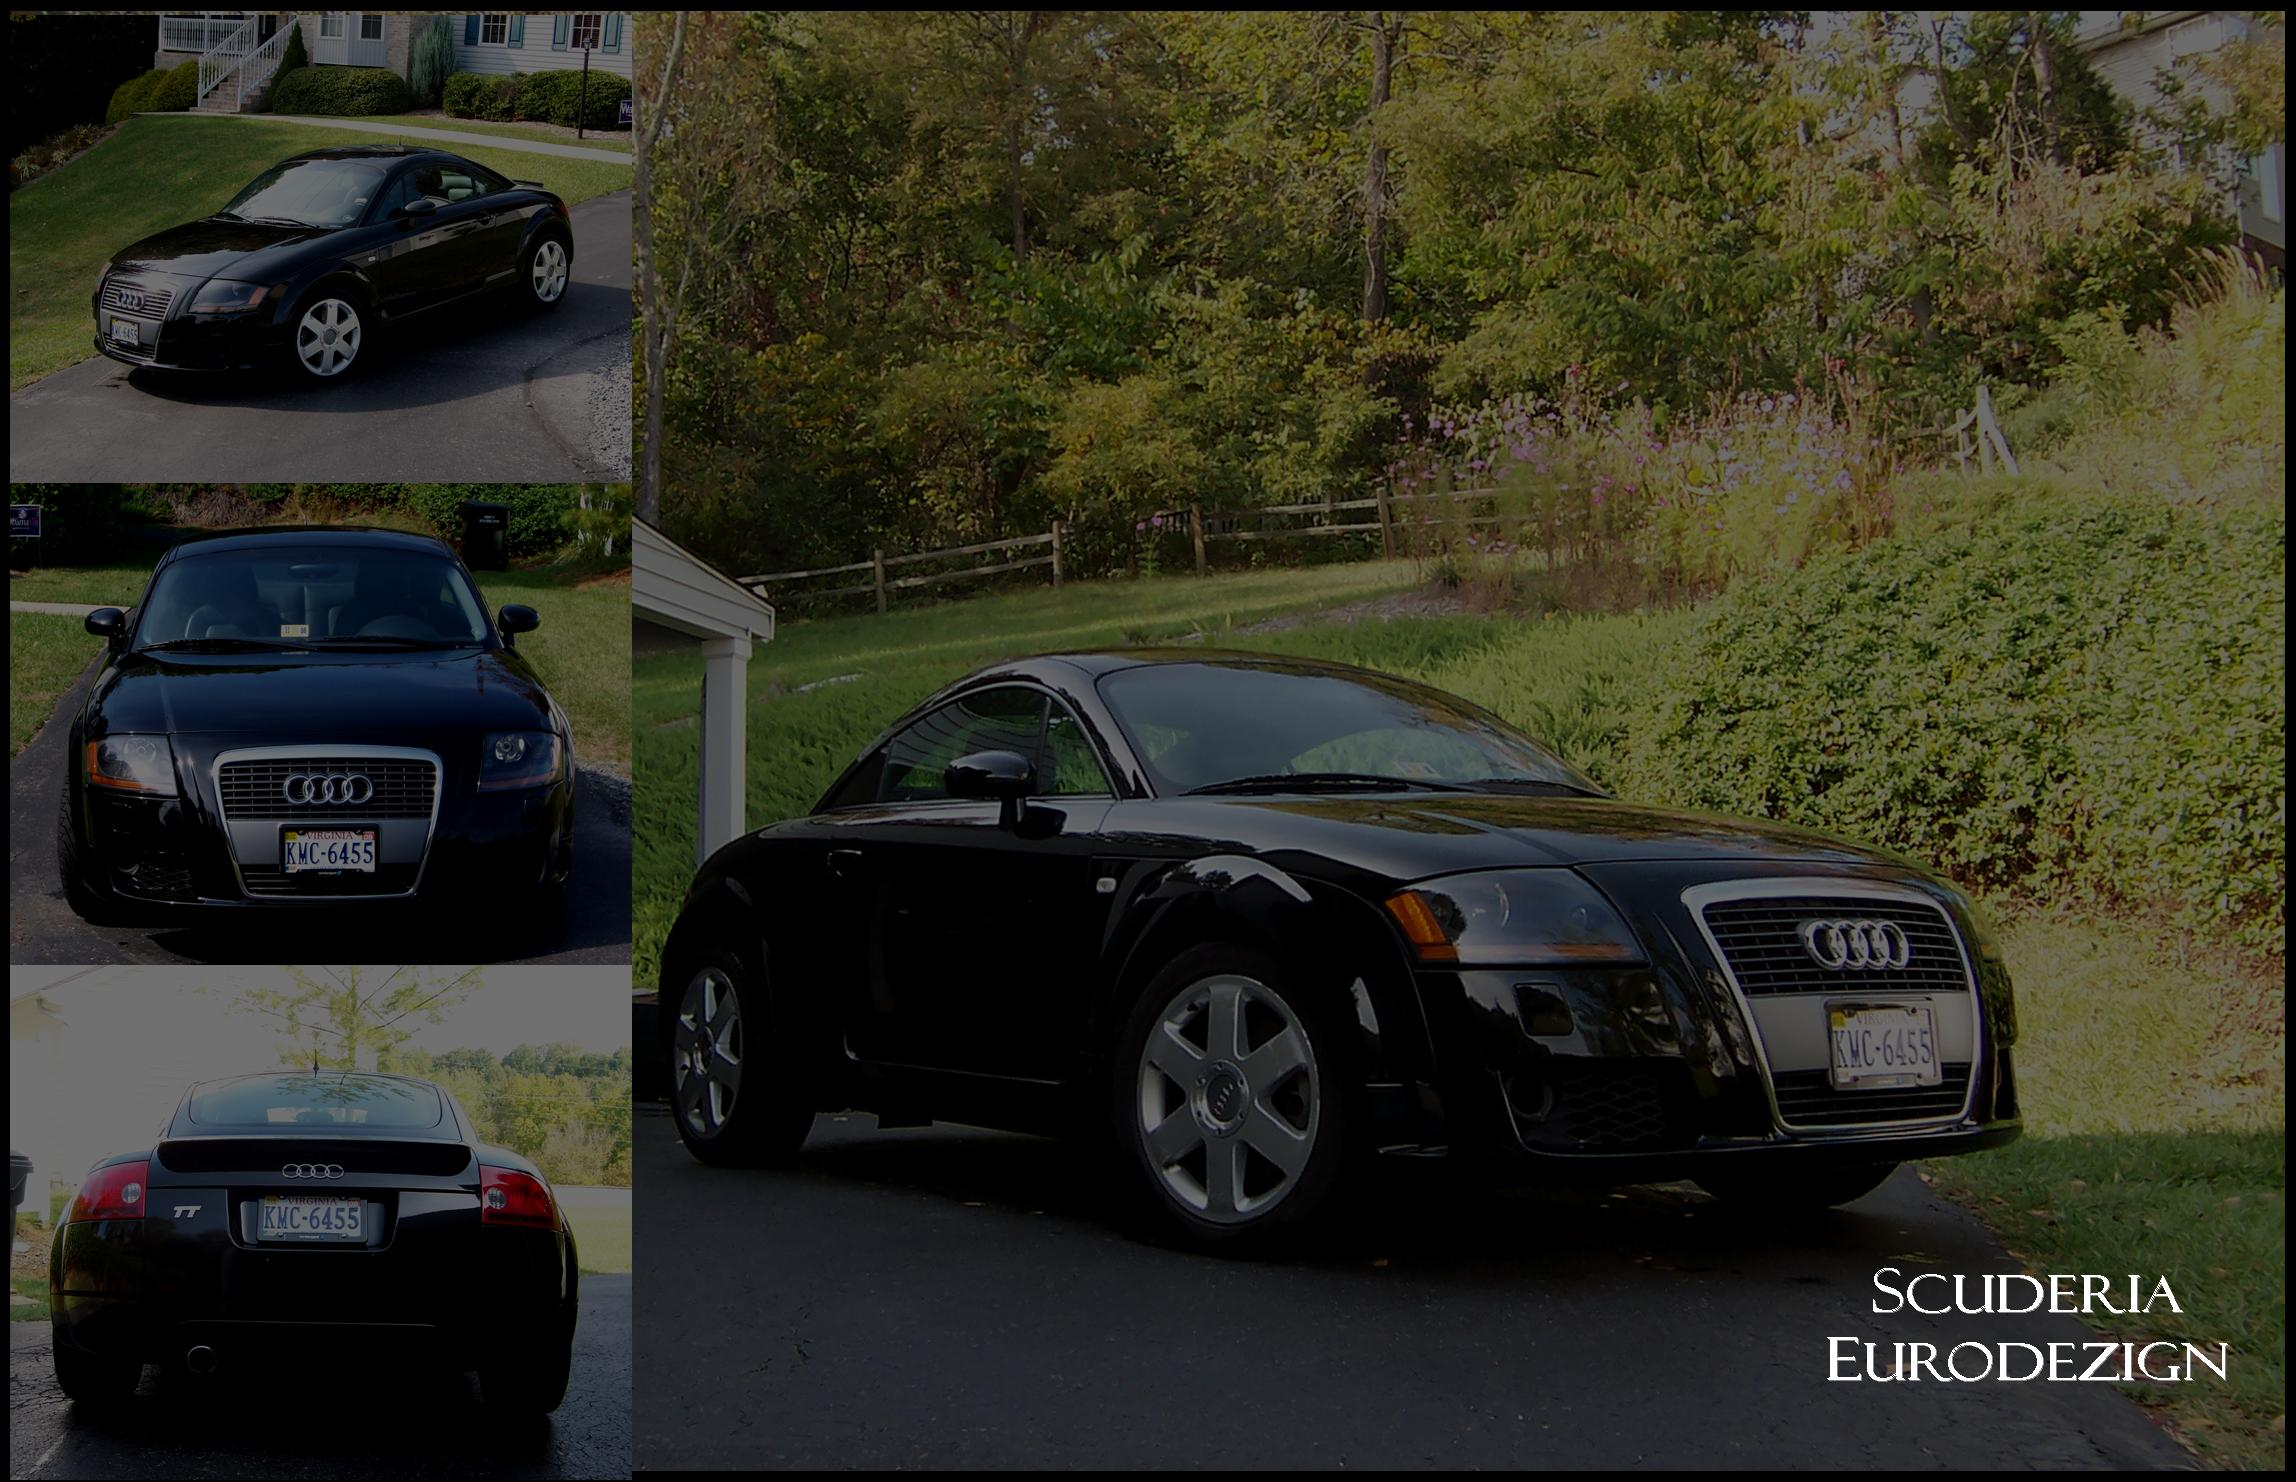 englandace 39 s 2001 audi tt in bristol va. Black Bedroom Furniture Sets. Home Design Ideas